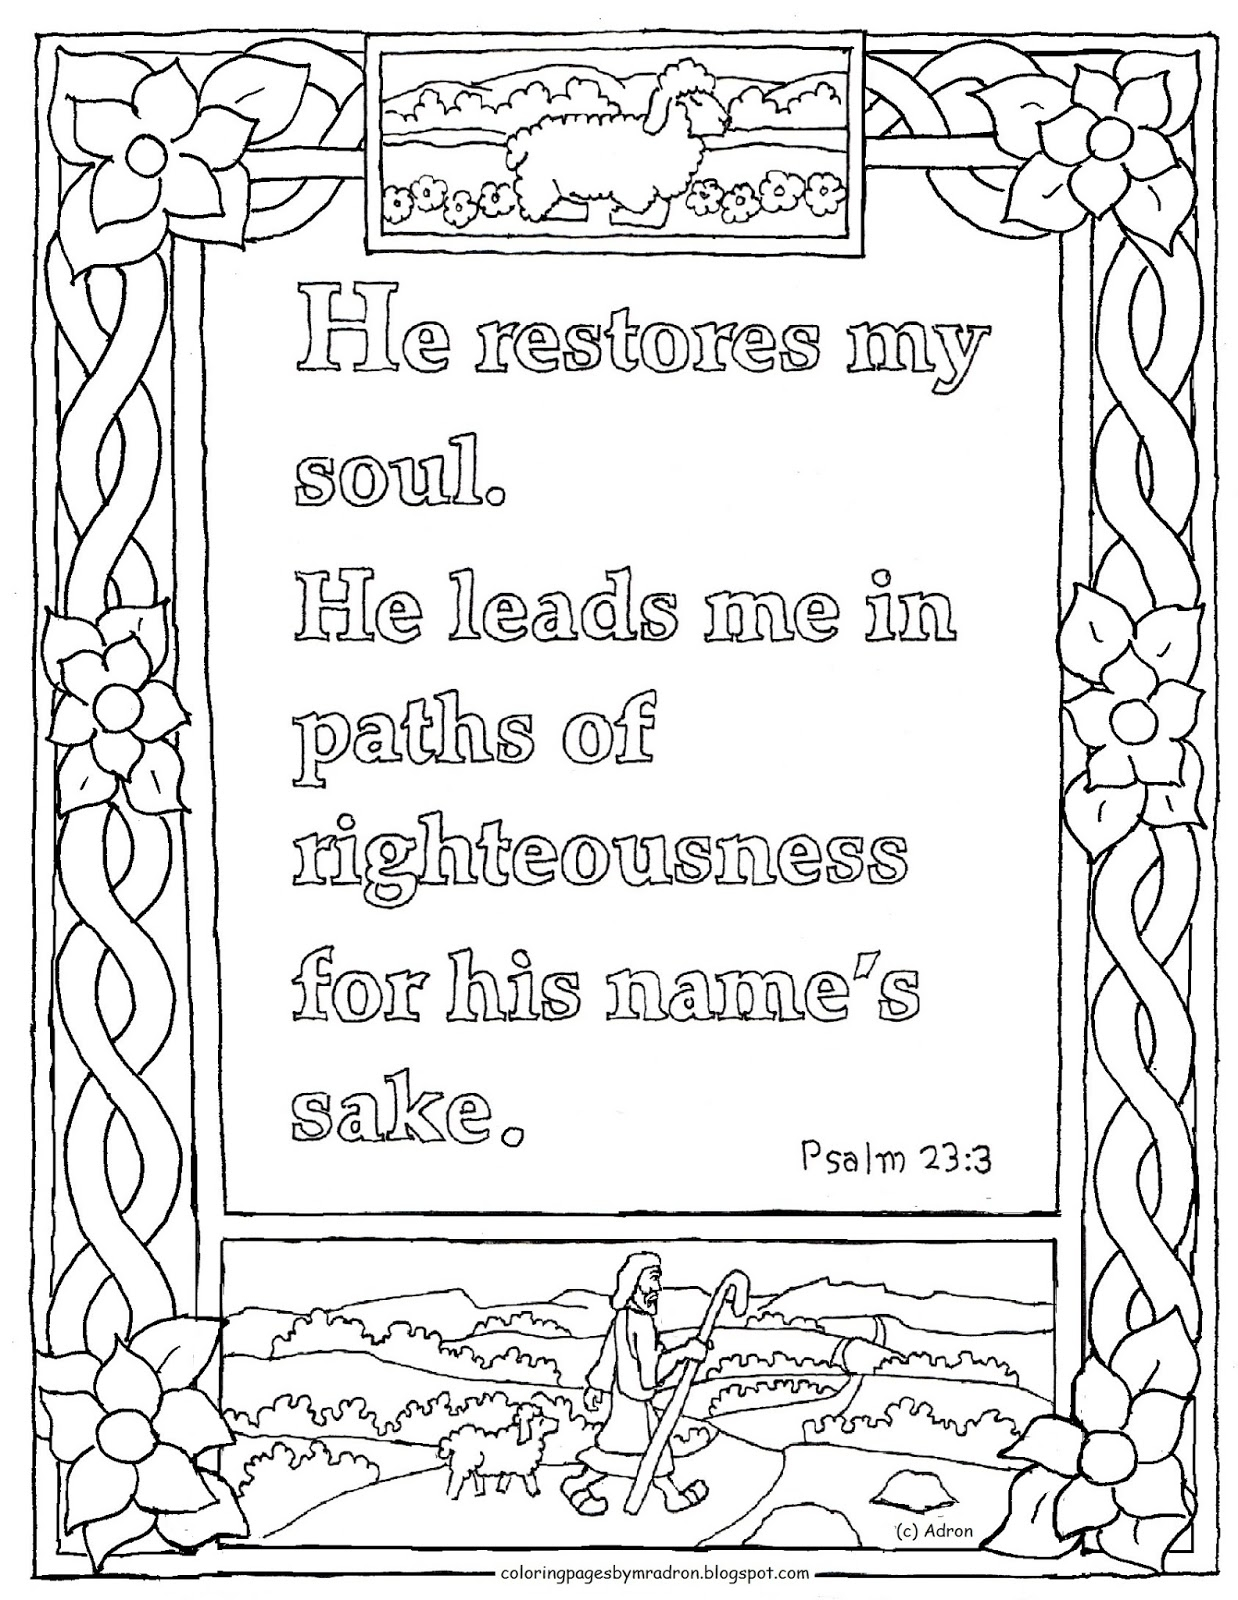 psalm 23 coloring page - printable psalm 233 coloring page he